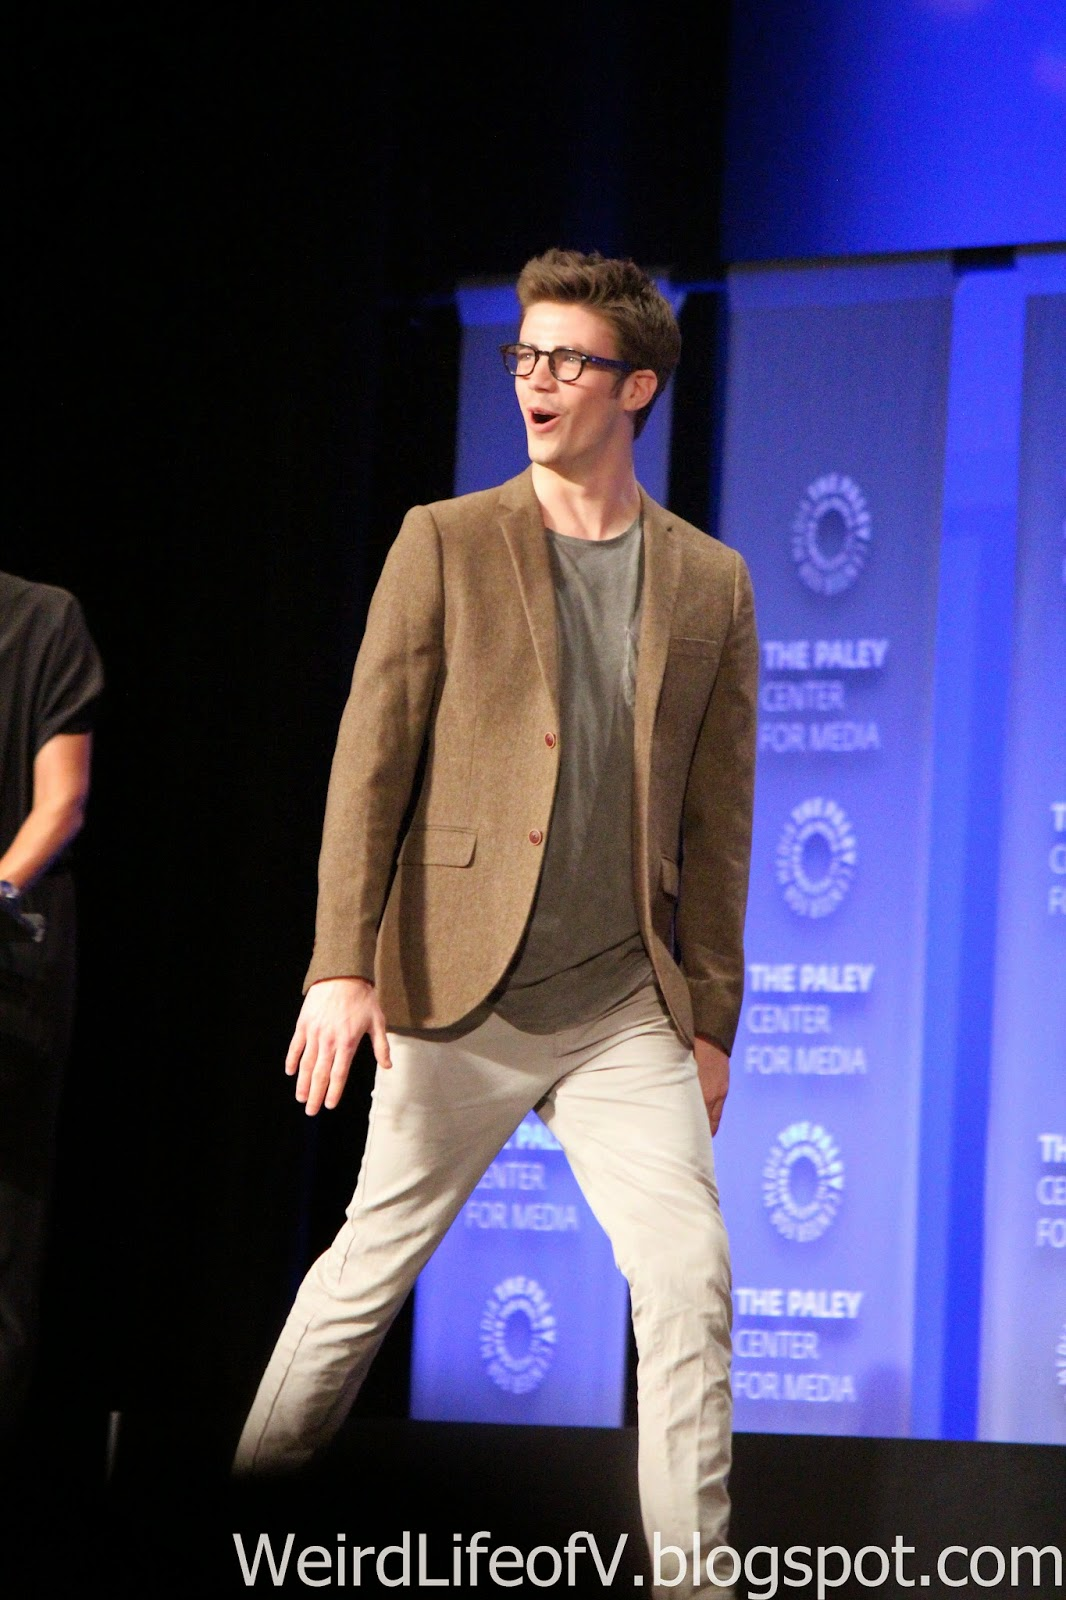 Grant Gustin arriving on stage